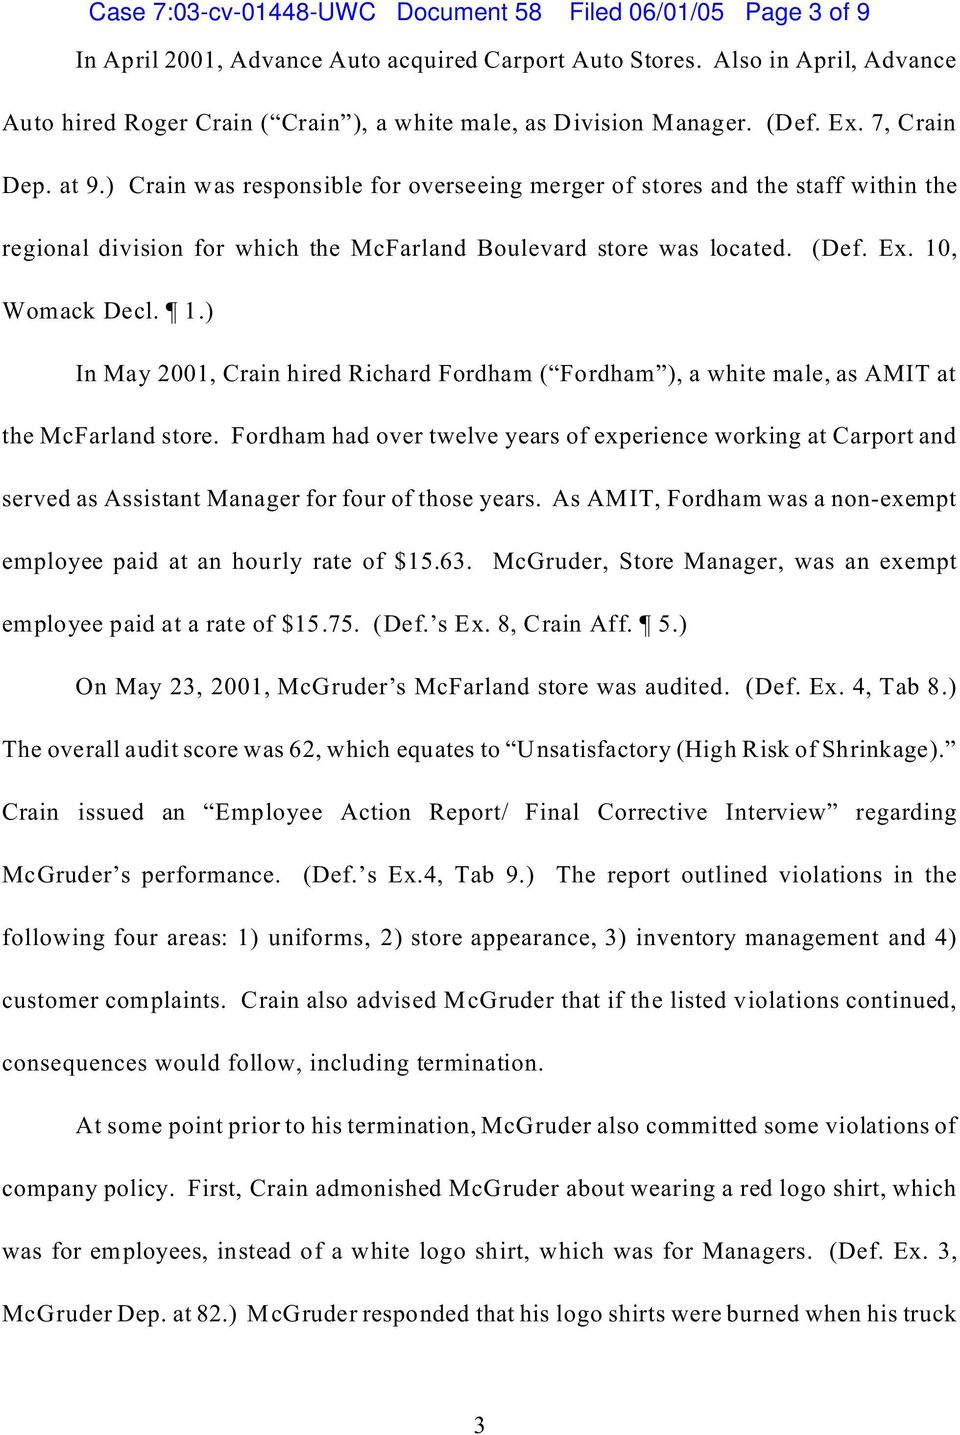 ) Crain was responsible for overseeing merger of stores and the staff within the regional division for which the McFarland Boulevard store was located. (Def. Ex. 10